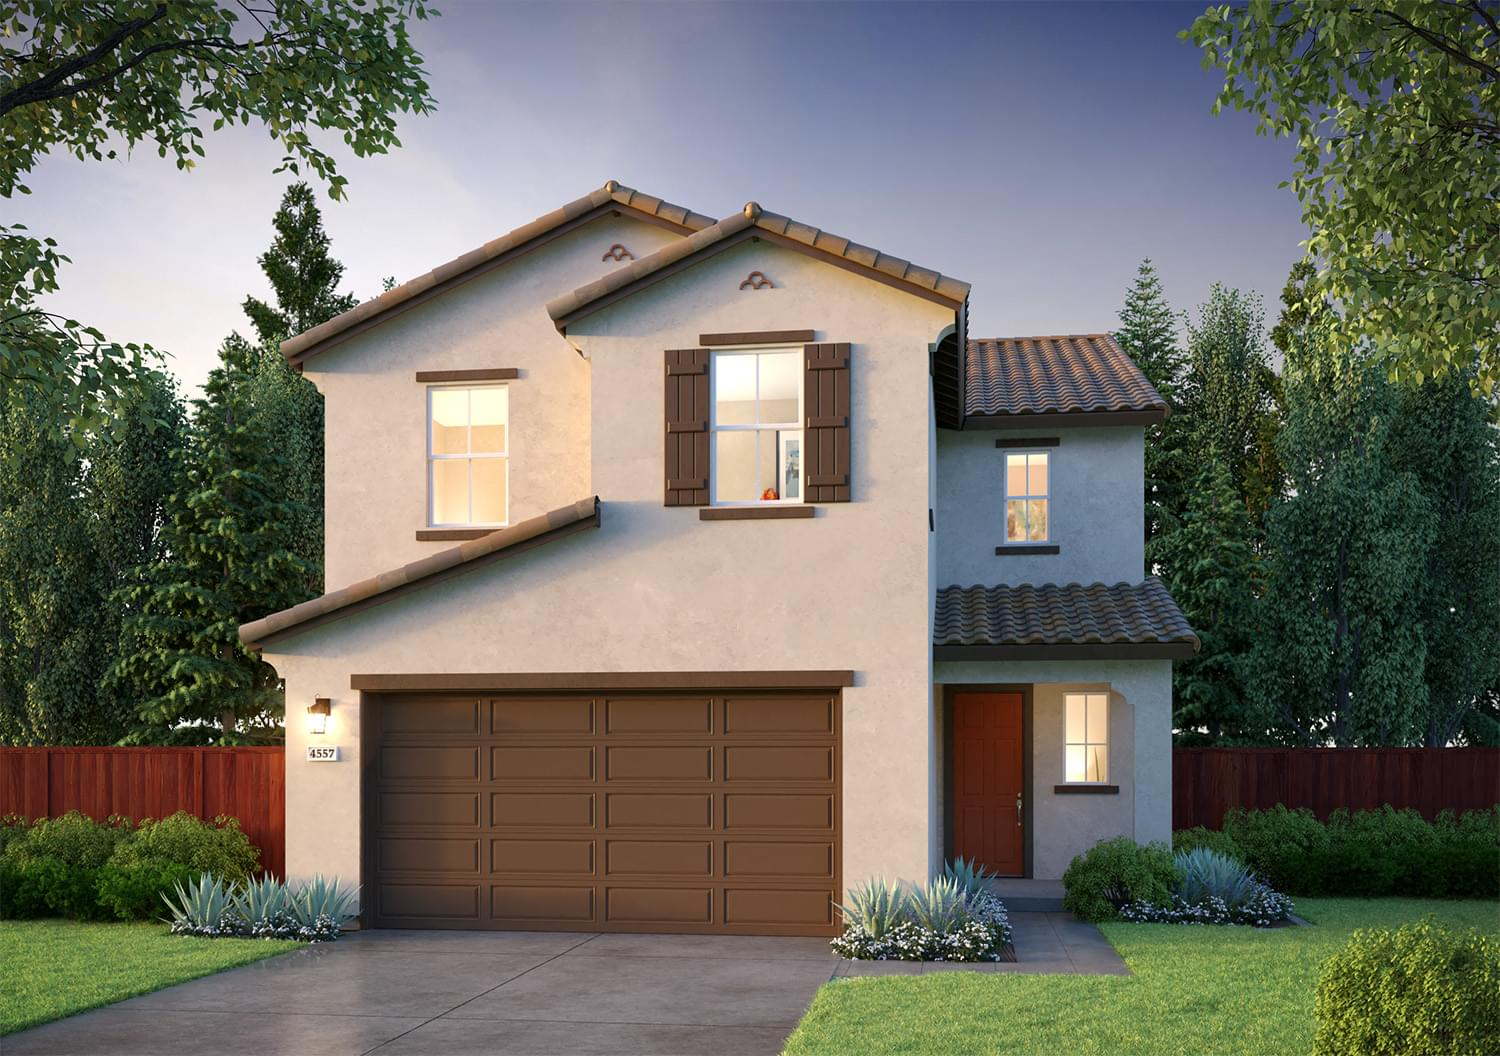 365 Tanoak Street in , CA by DeNova Homes